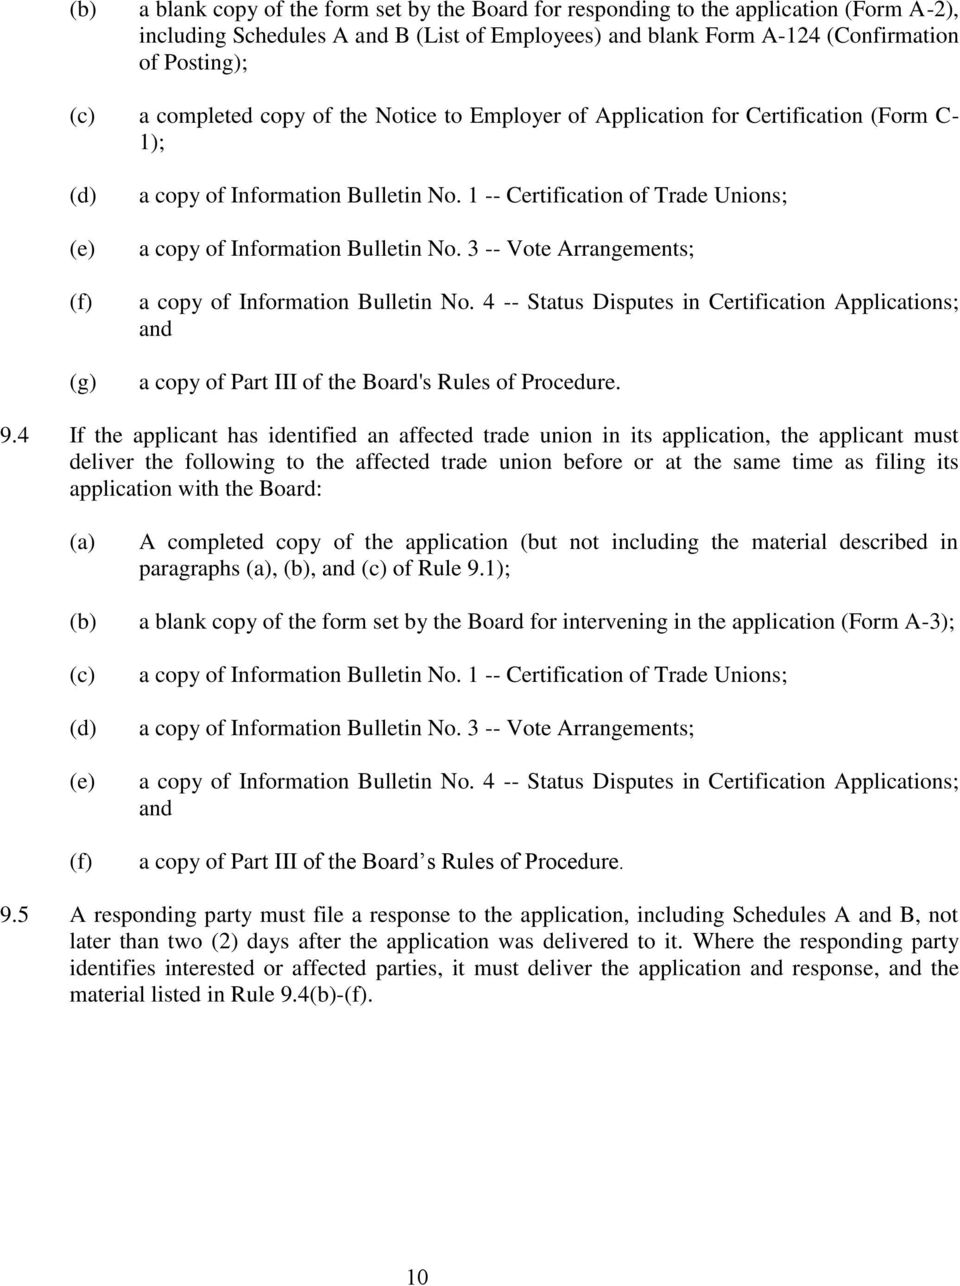 3 -- Vote Arrangements; a copy of Information Bulletin No. 4 -- Status Disputes in Certification Applications; and a copy of Part III of the Board's Rules of Procedure. 9.